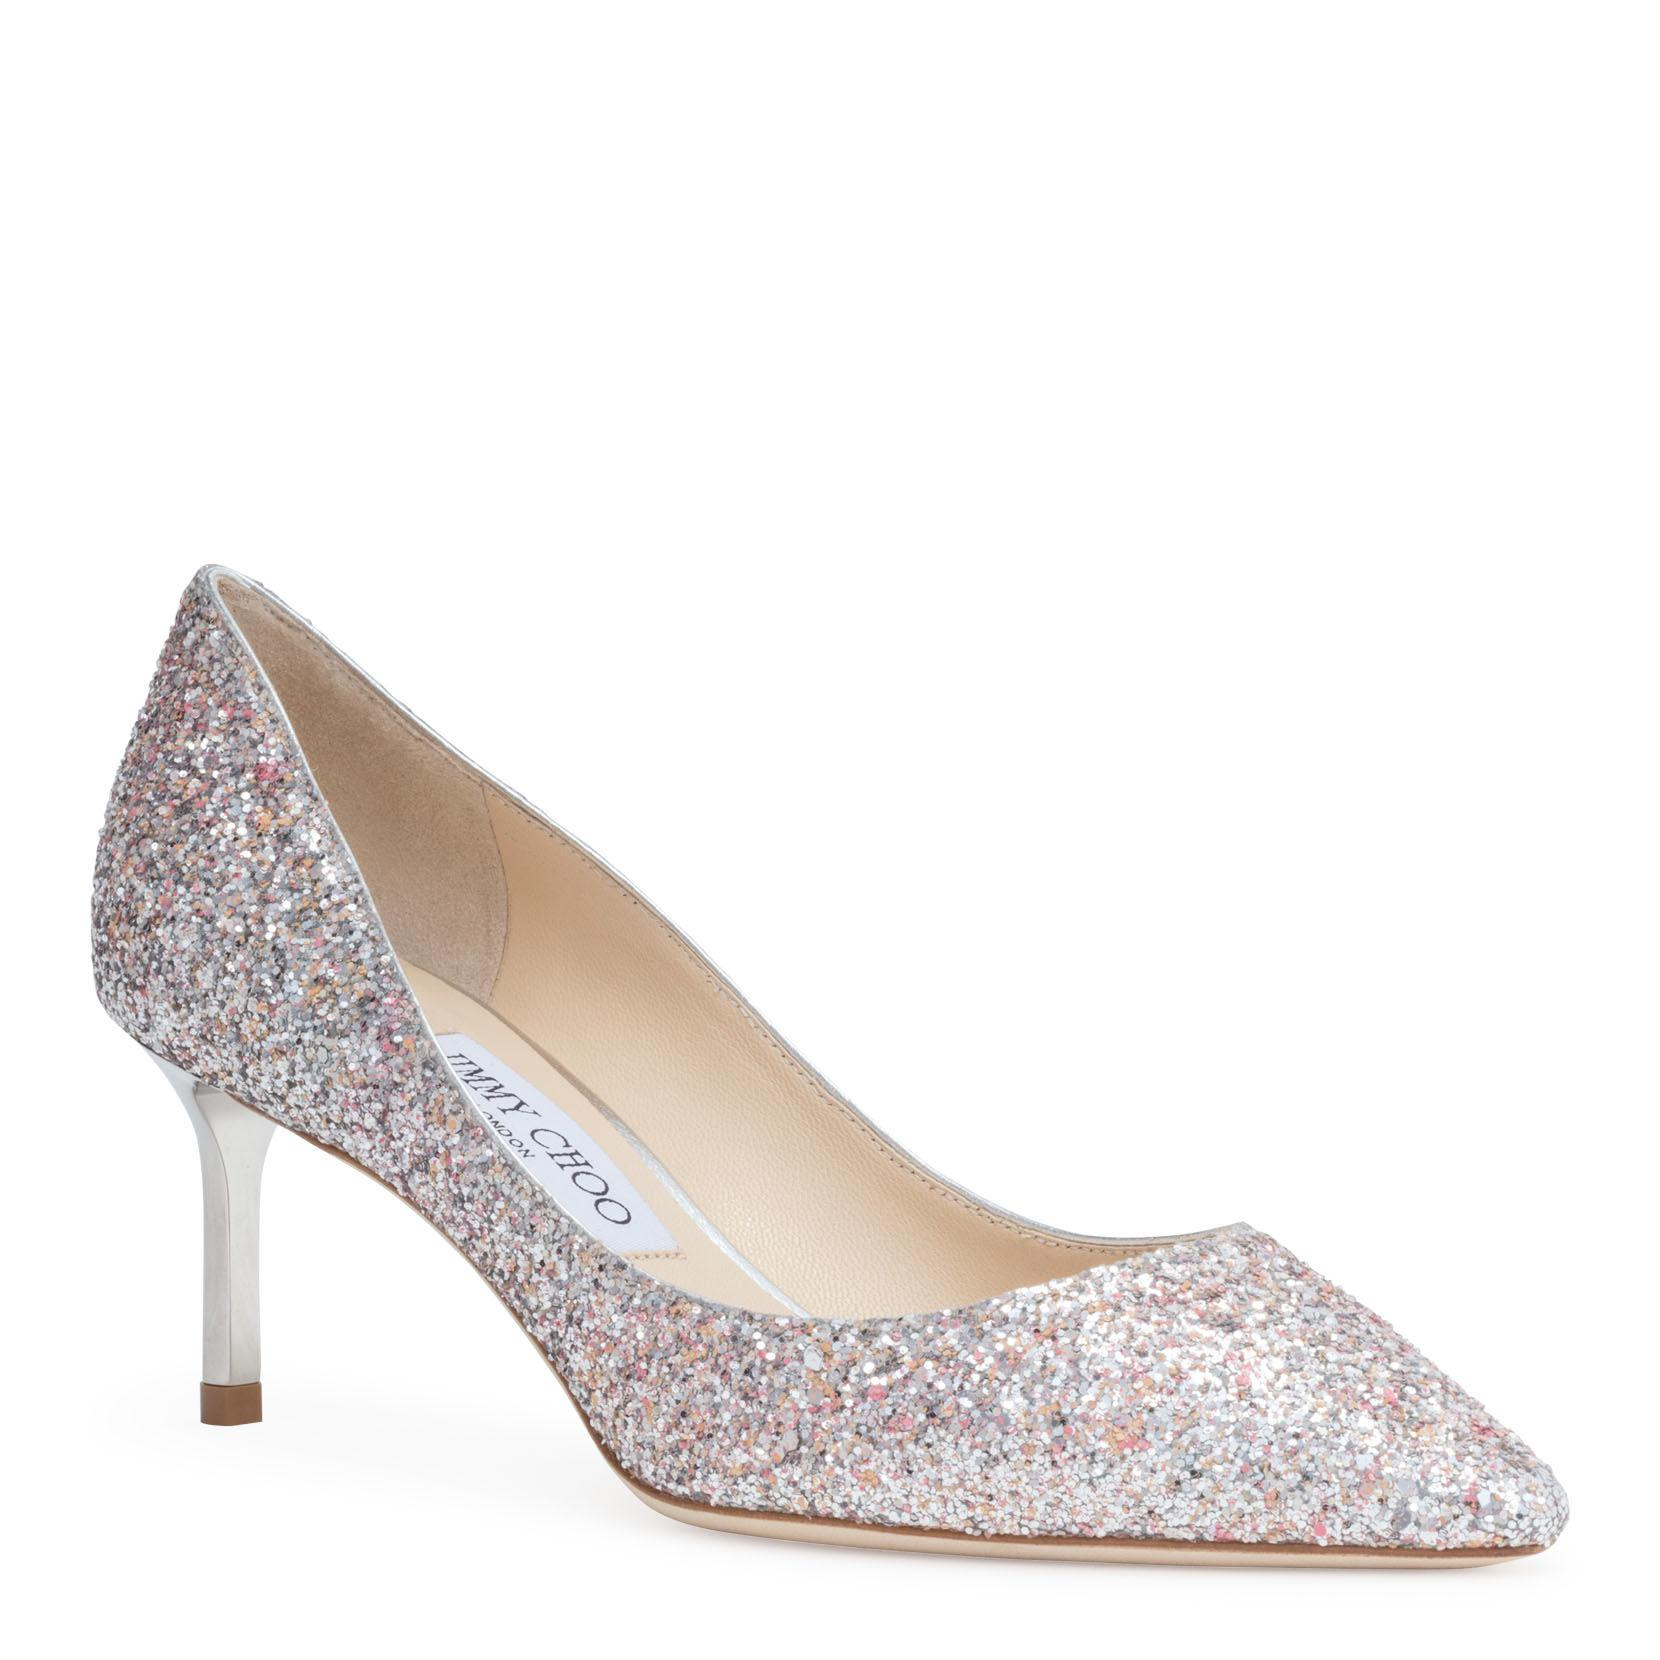 08e3f21a5c4 Lyst - Jimmy Choo Romy 60 Silver Mix Glitter Pumps in Metallic